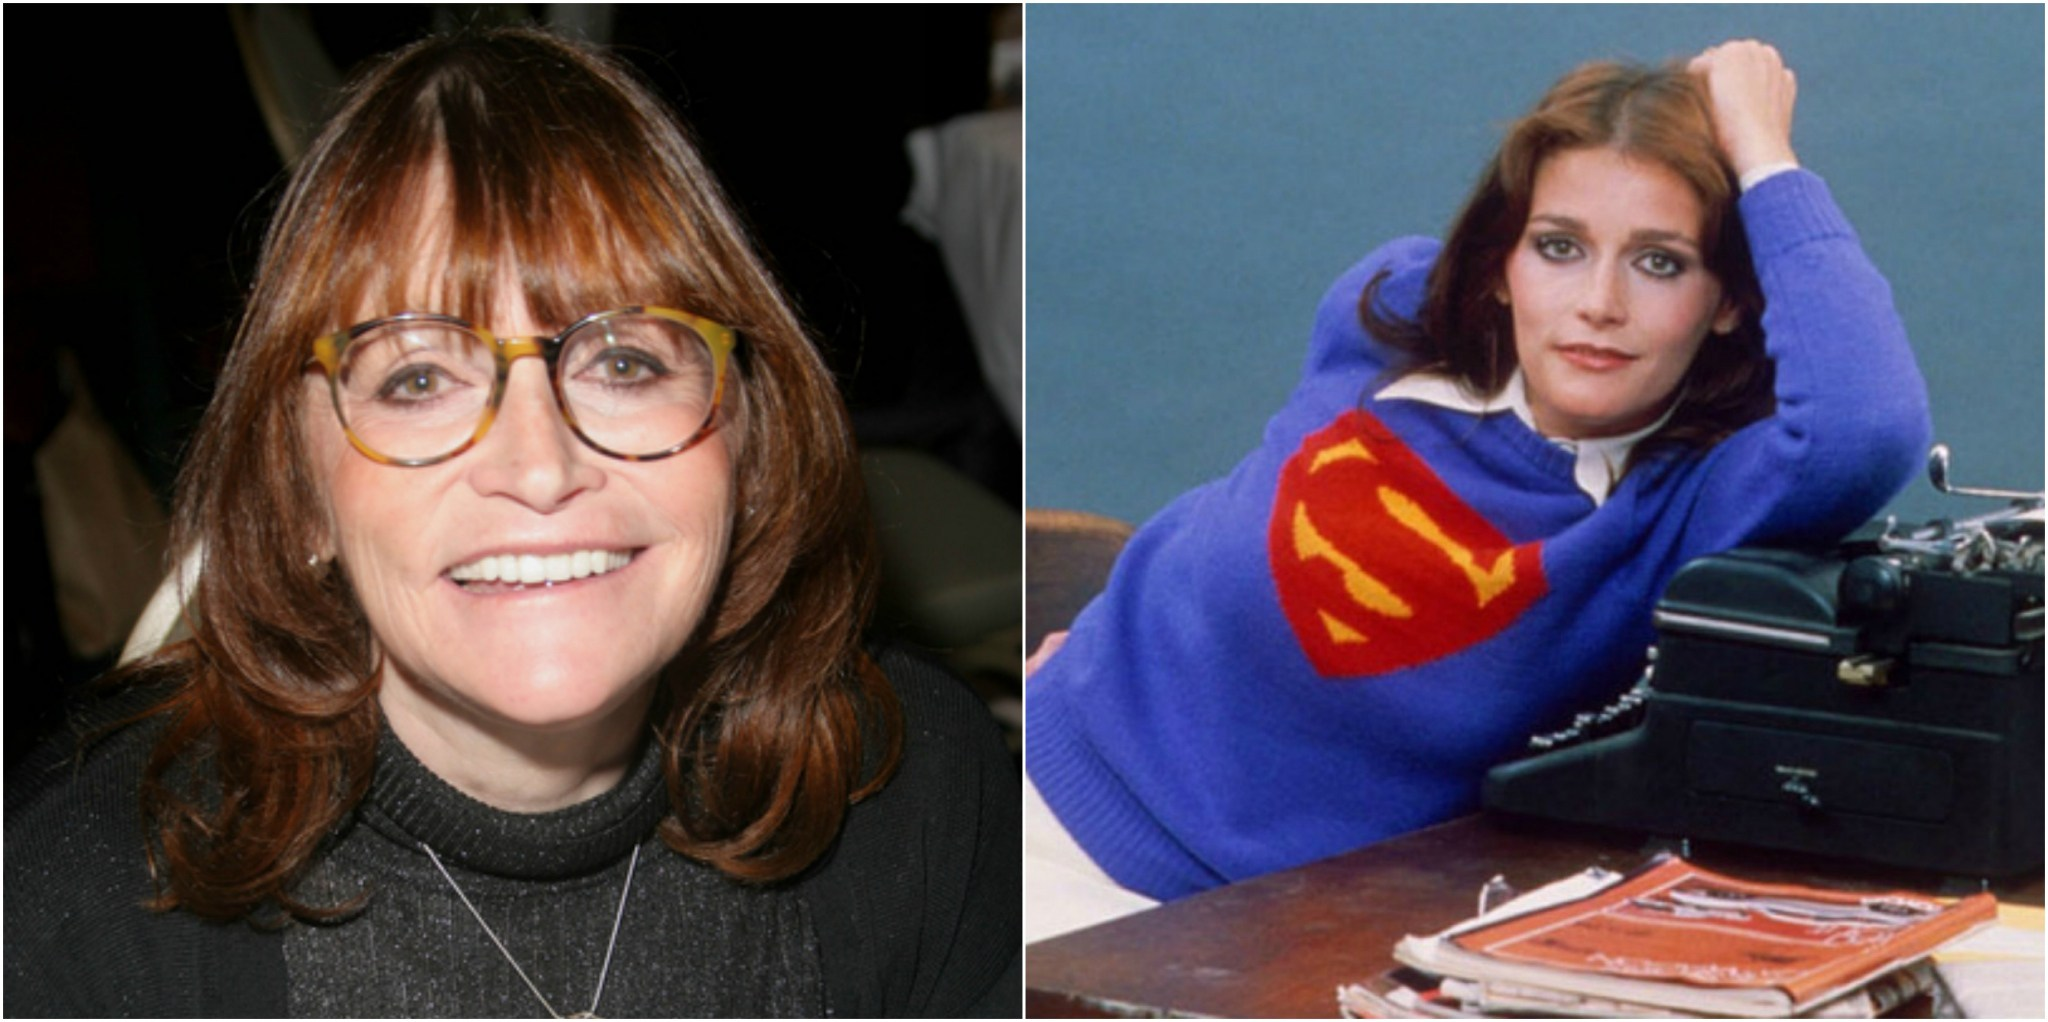 Fallece Margot Kidder, muerta la actriz de Lois Lane en 'Superman'